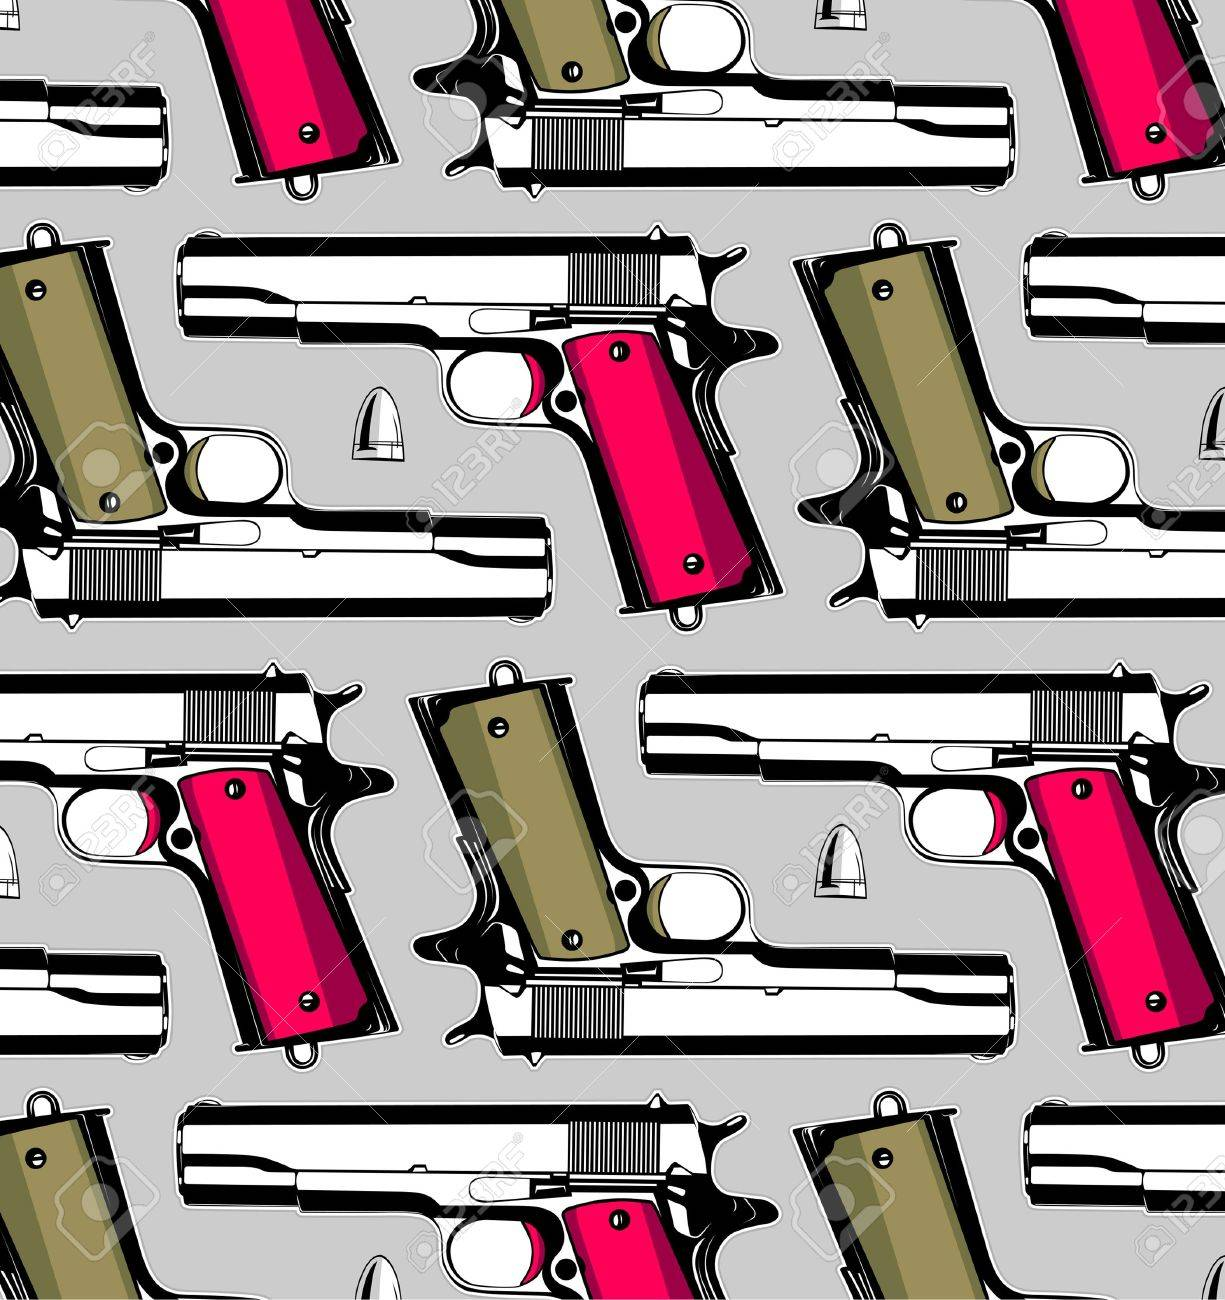 gun and bullet pattern background Stock Vector - 10260107